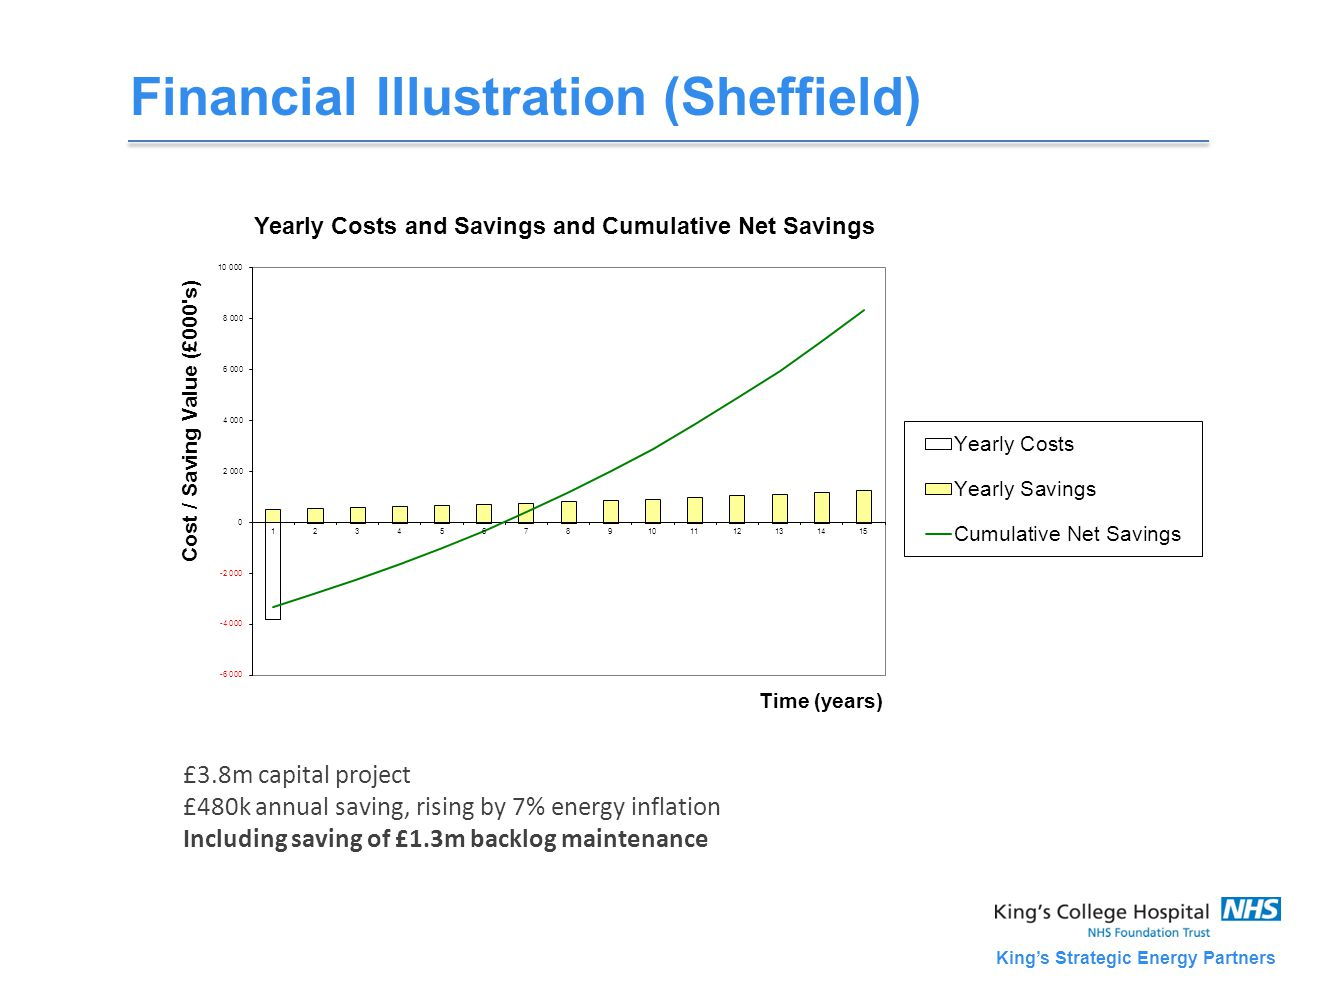 King's Strategic Energy Partners Financial Illustration (Sheffield) £3.8m capital project £480k annual saving, rising by 7% energy inflation Including saving of £1.3m backlog maintenance